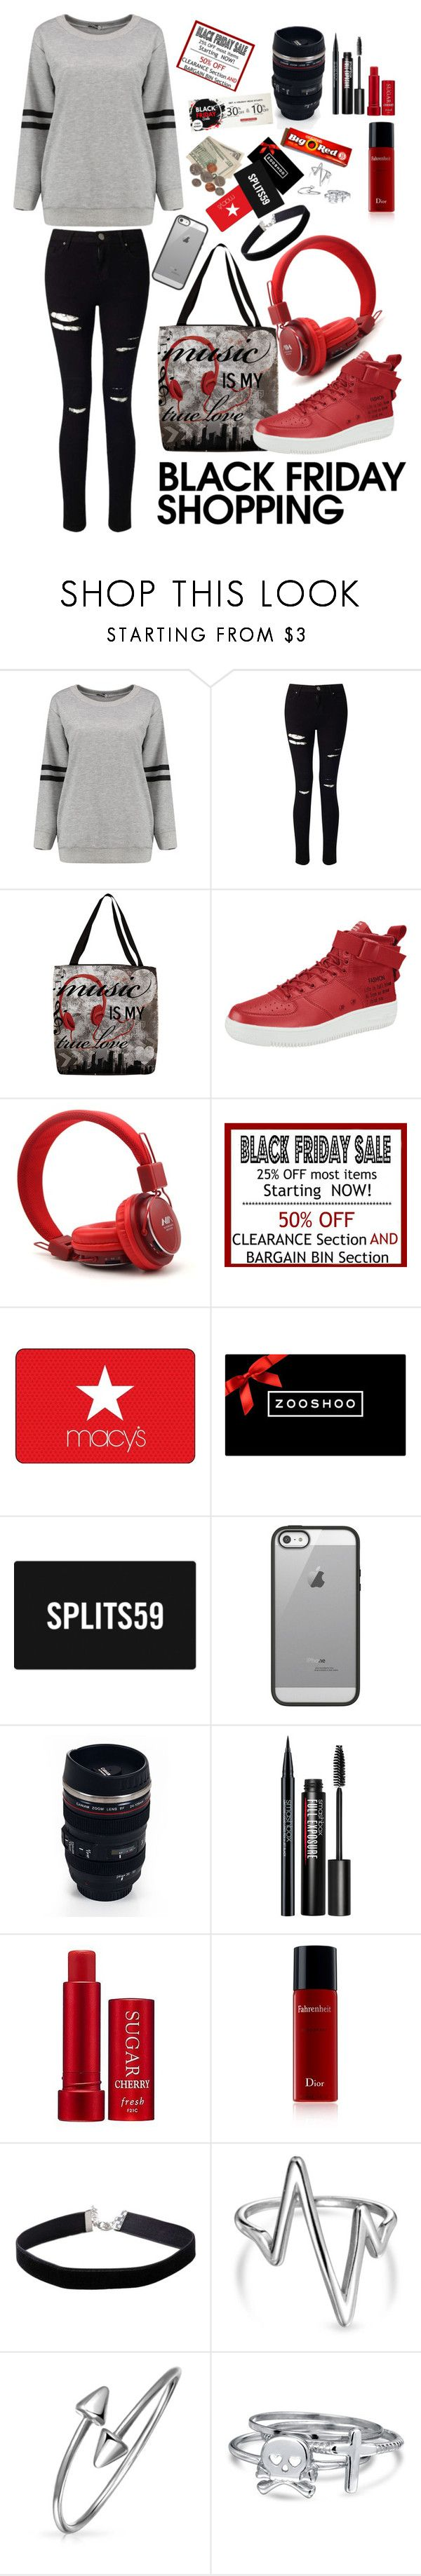 """""""Its black Friday..."""" by lexisamskywalker ❤ liked on Polyvore featuring Miss Selfridge, Thumbprintz, Belkin, Whetstone Cutlery, Wrigley's, Smashbox, Fresh, Christian Dior and Bling Jewelry"""